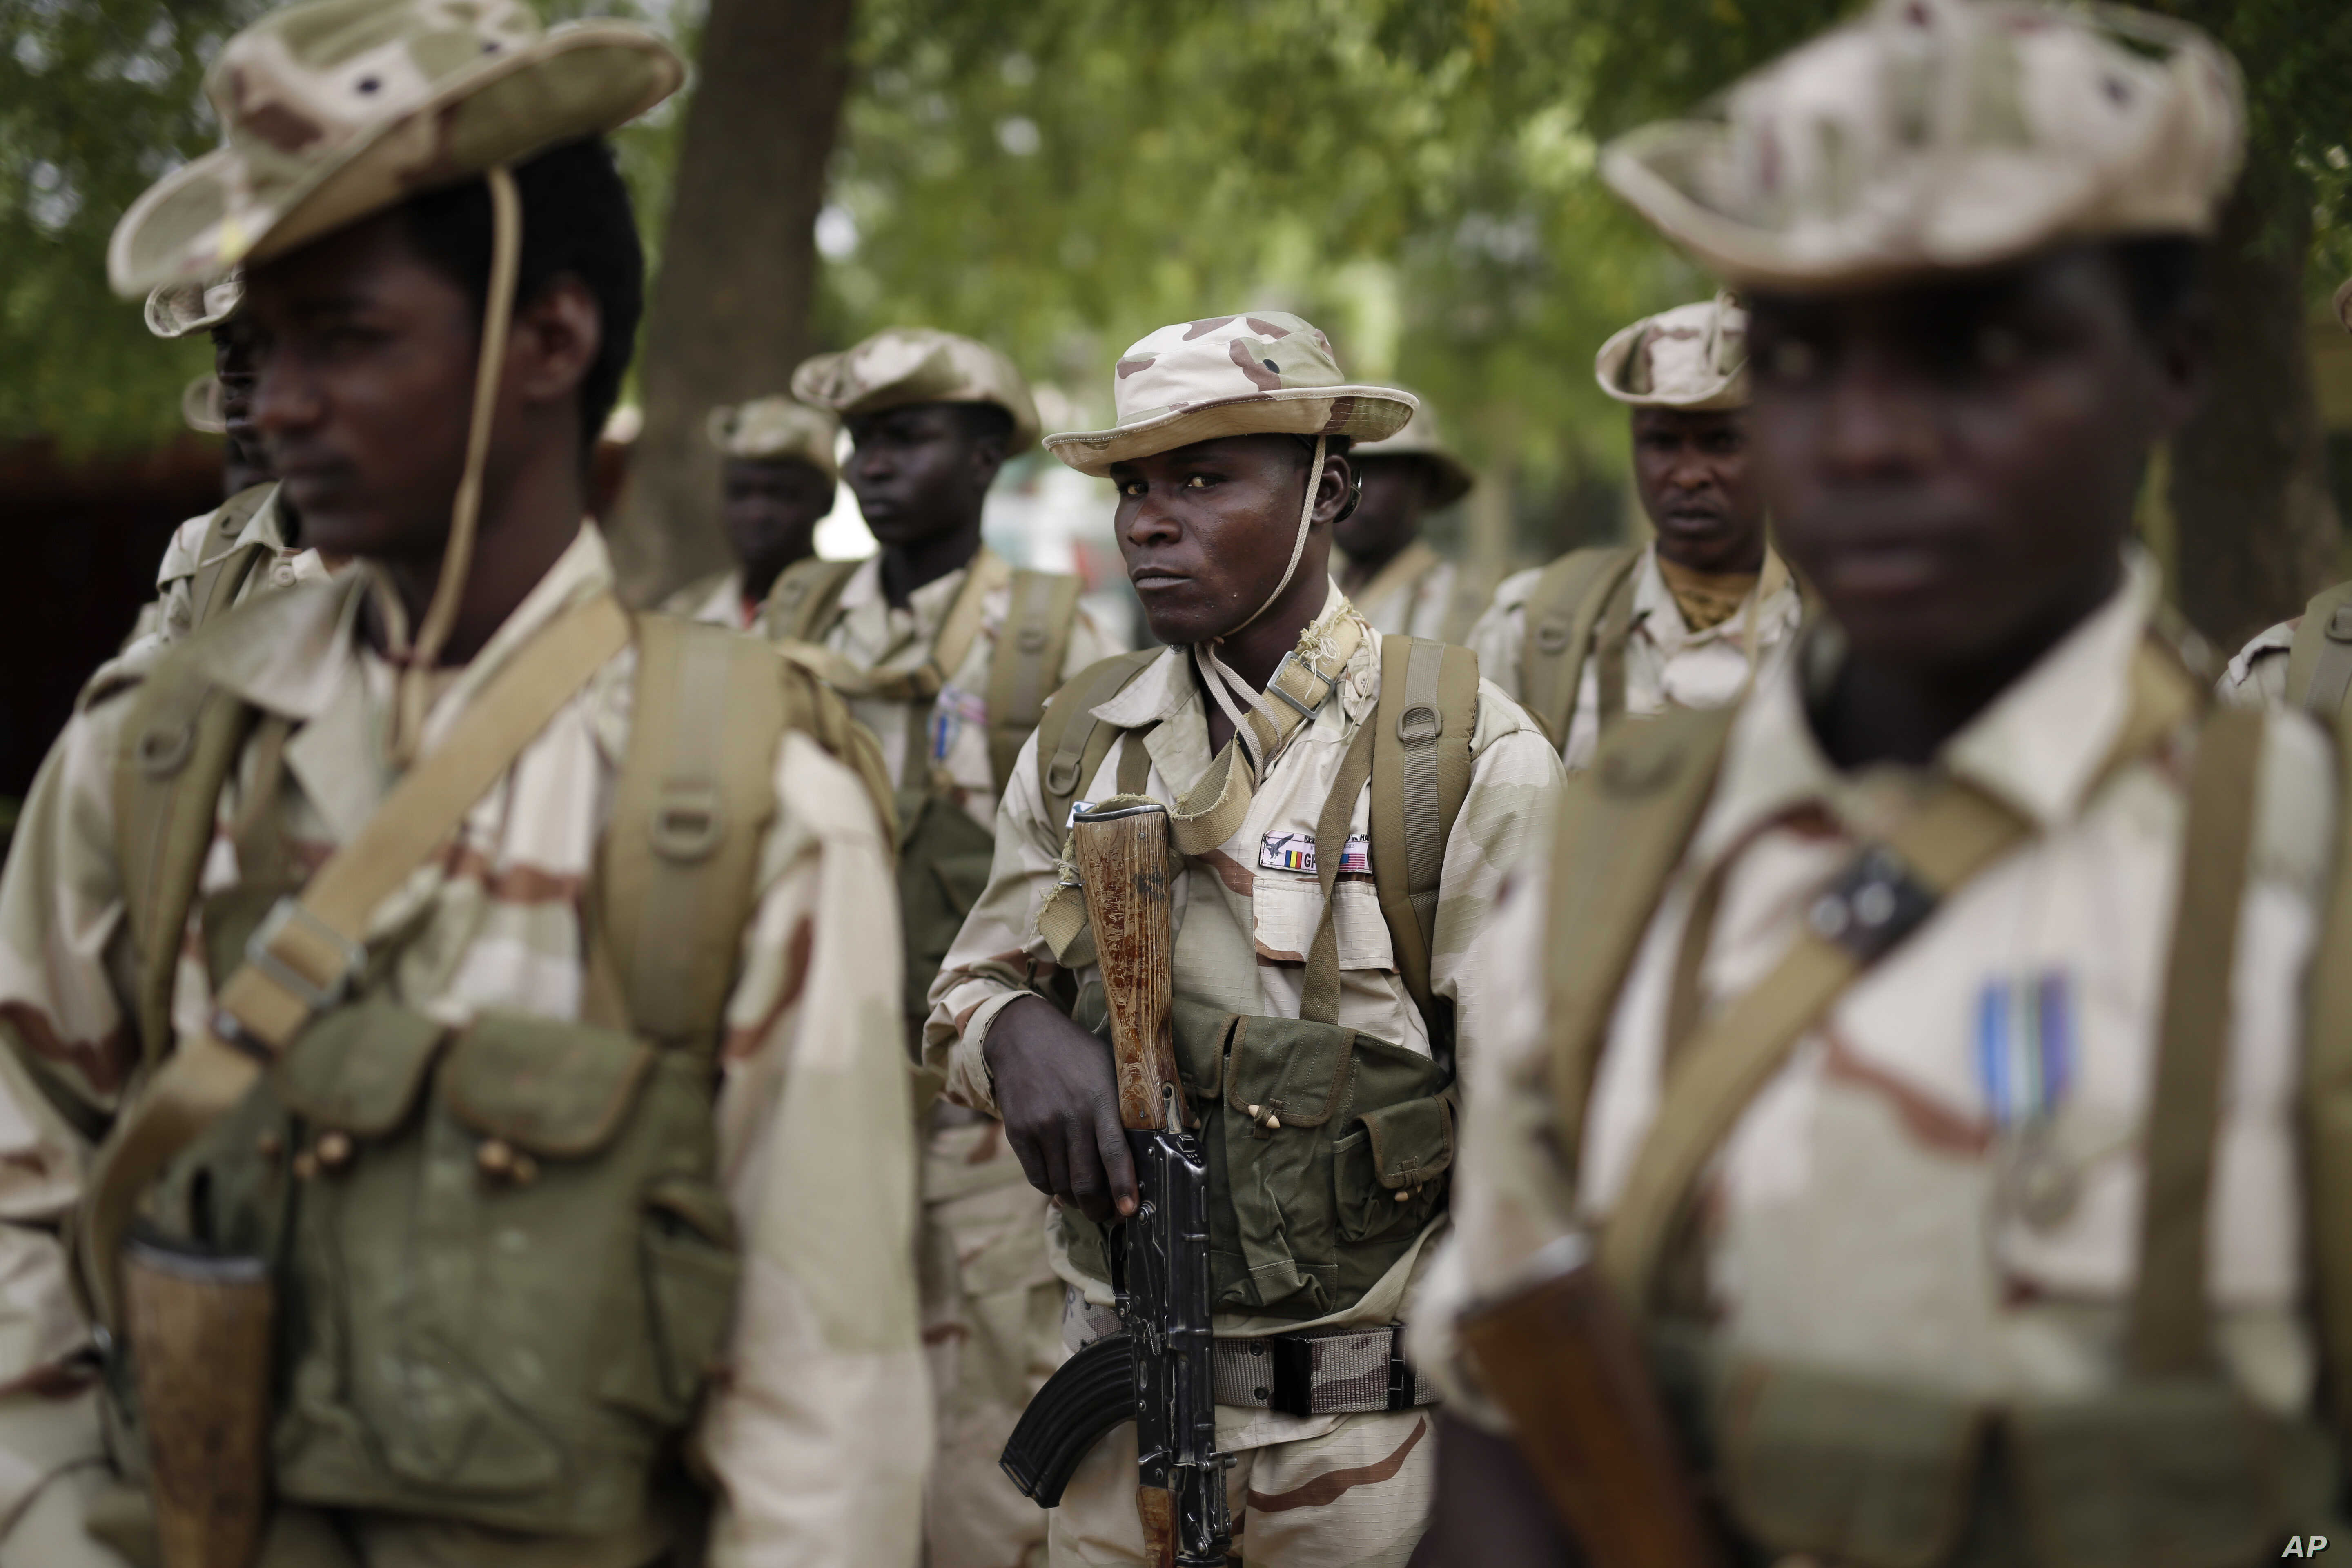 UN: Hot Pursuit Laws Needed to Fight Terrorism in West